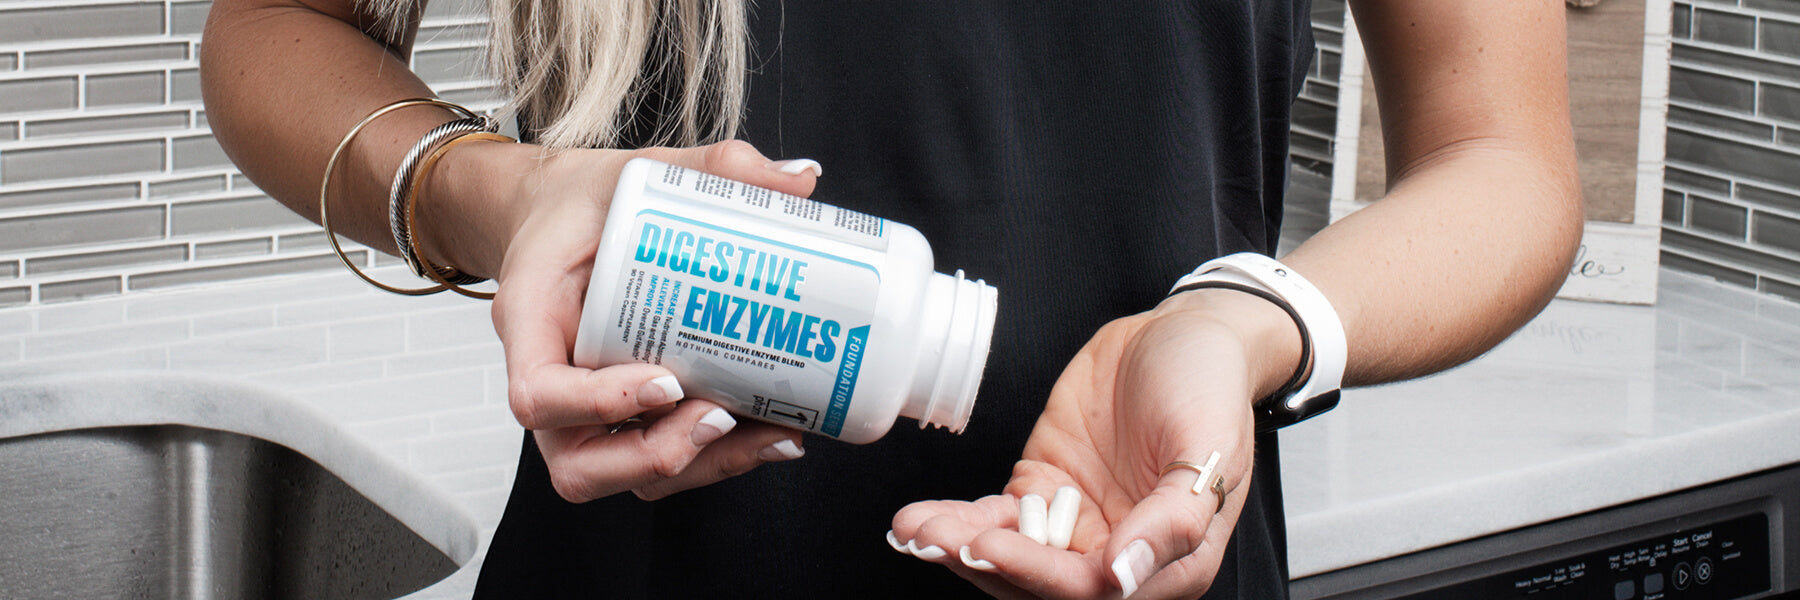 What Are Digestive Enzymes?